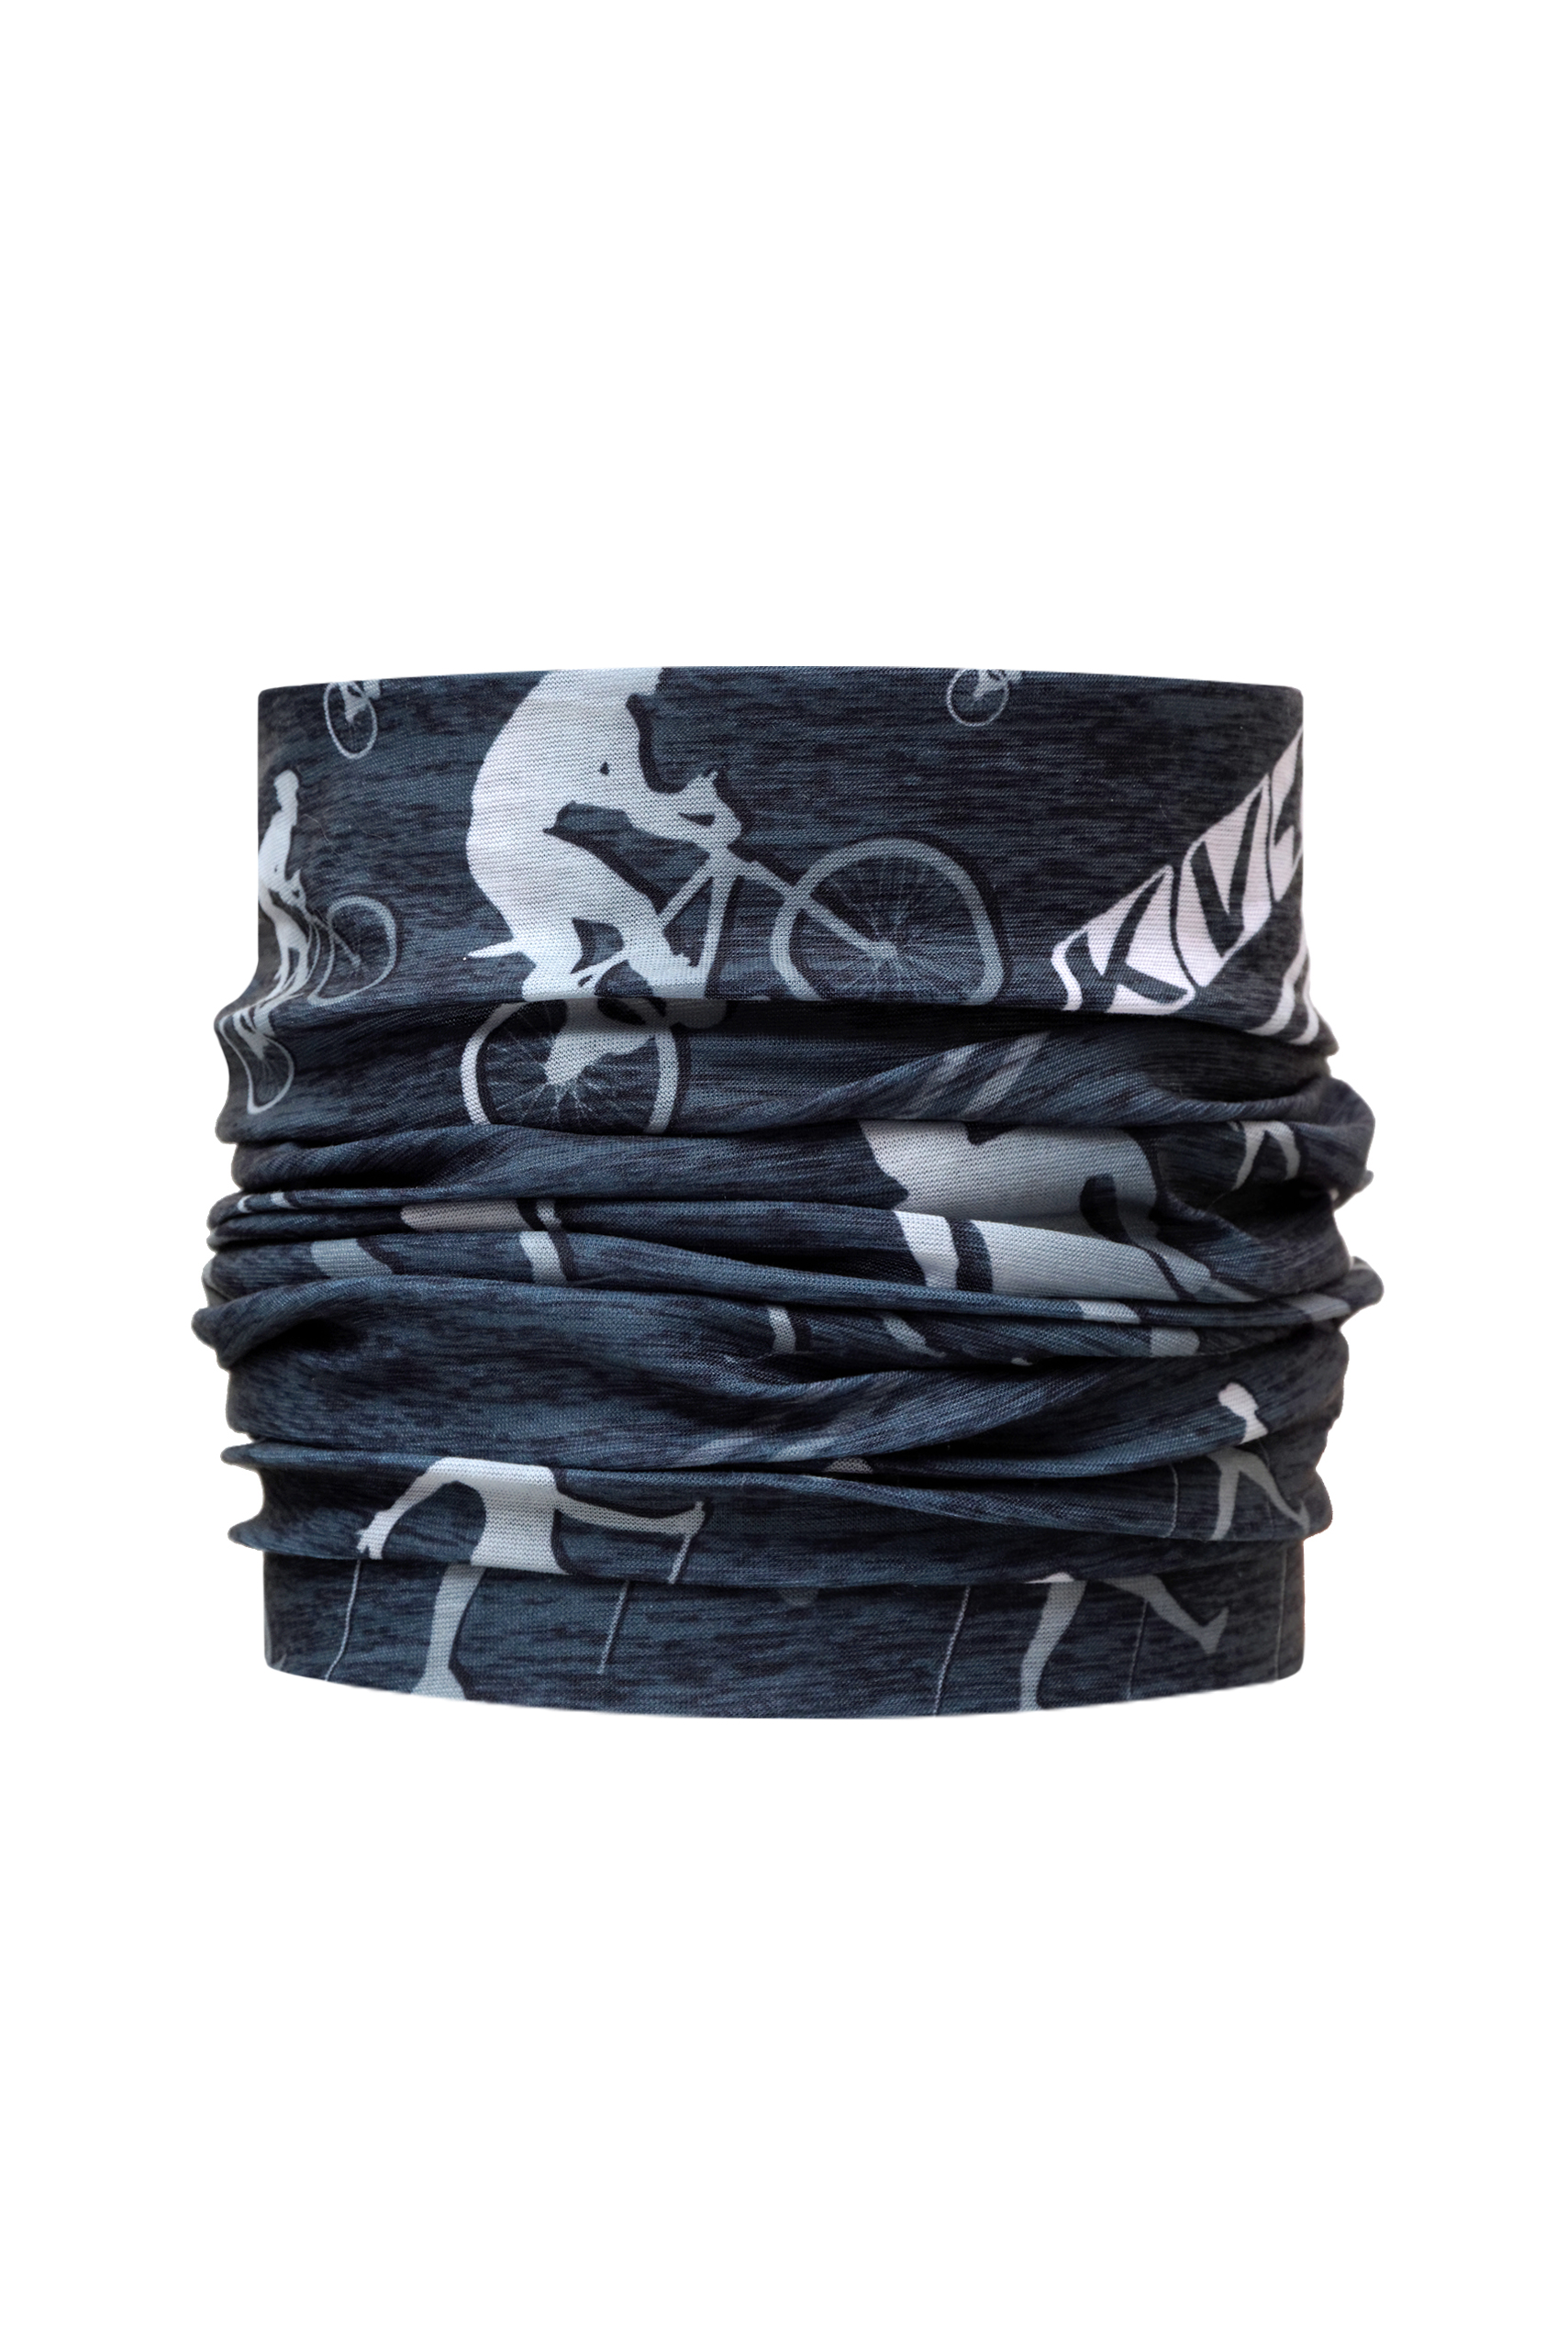 BANDANA (Multisport/black)